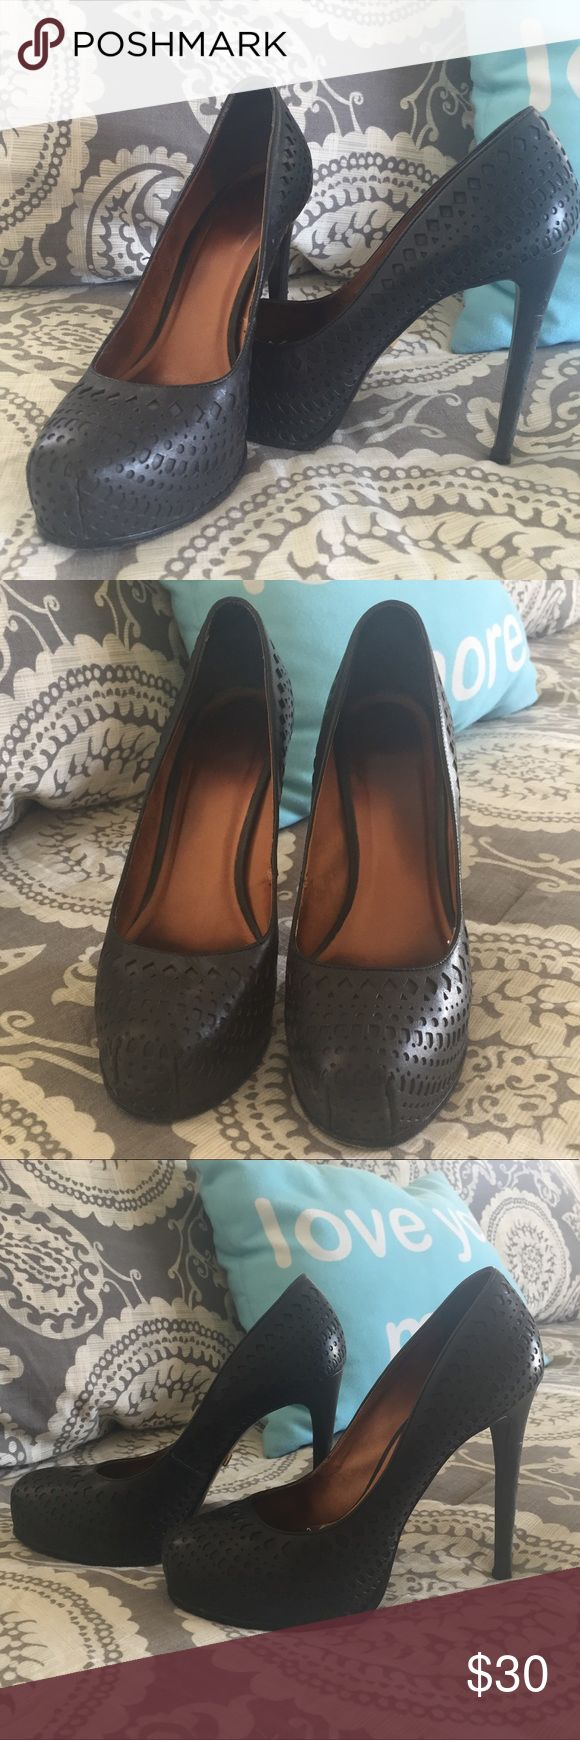 """🆕 Pour La Victoire Pumps Beautiful Pour La Victoire patterned black leather pumps!!  These have had a bit of wear, but have many more miles to go. I absolutely love these shoes, but my foot grew a little bit after baby and I just can't squeeze my foot in anymore 😫  They definitely need a new home!!   5"""" heel 1.25"""" covered platform   See second to last photo for wear Last photo is stock photo to show fit.   Open to reasonable offers No Trades Pour la Victoire Shoes Platforms"""